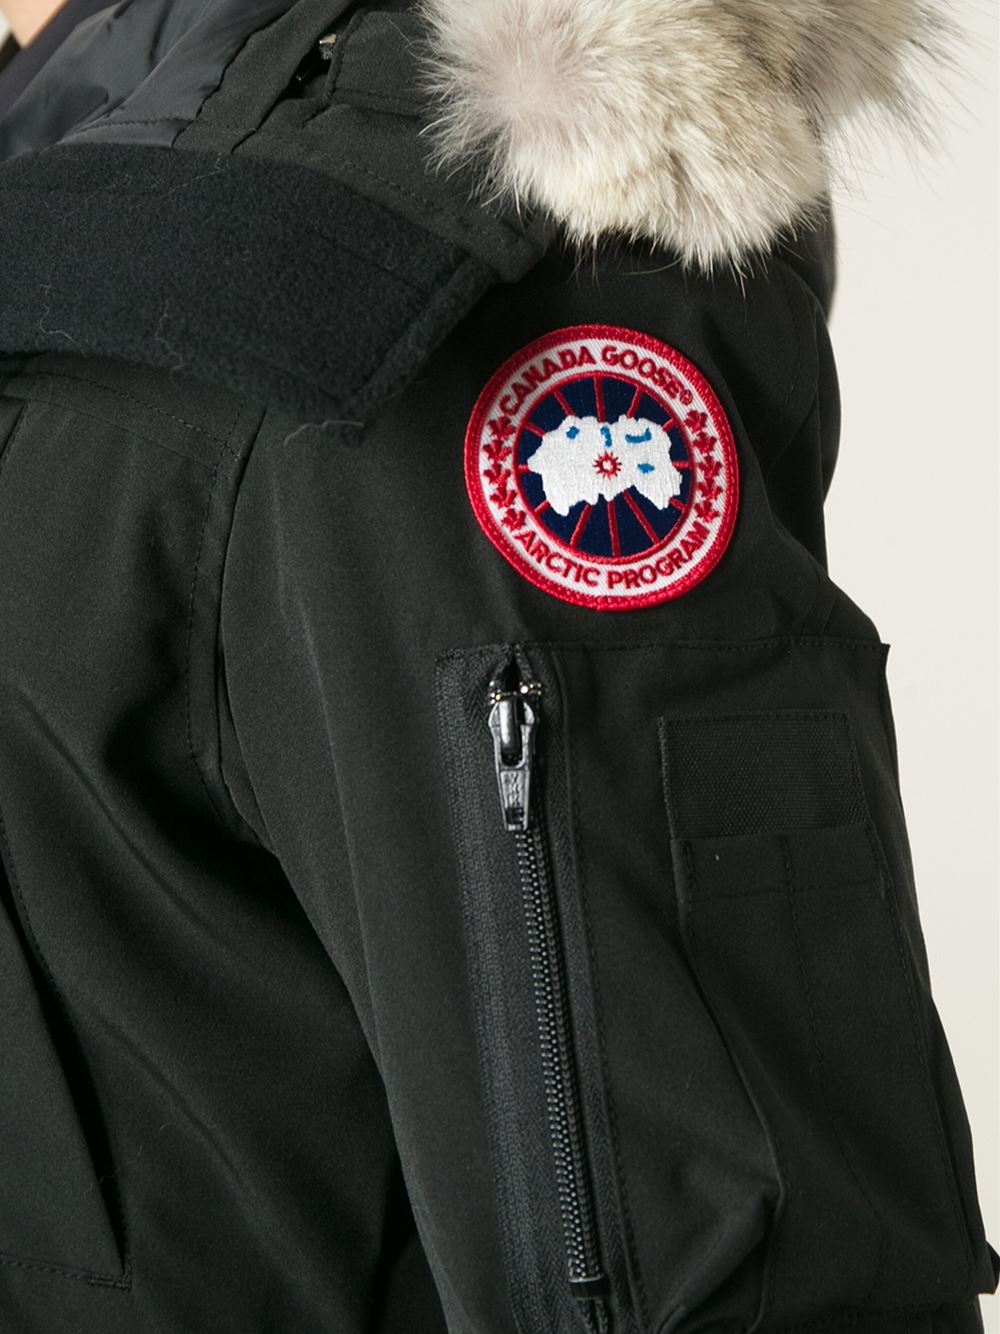 canada goose logo on right arm